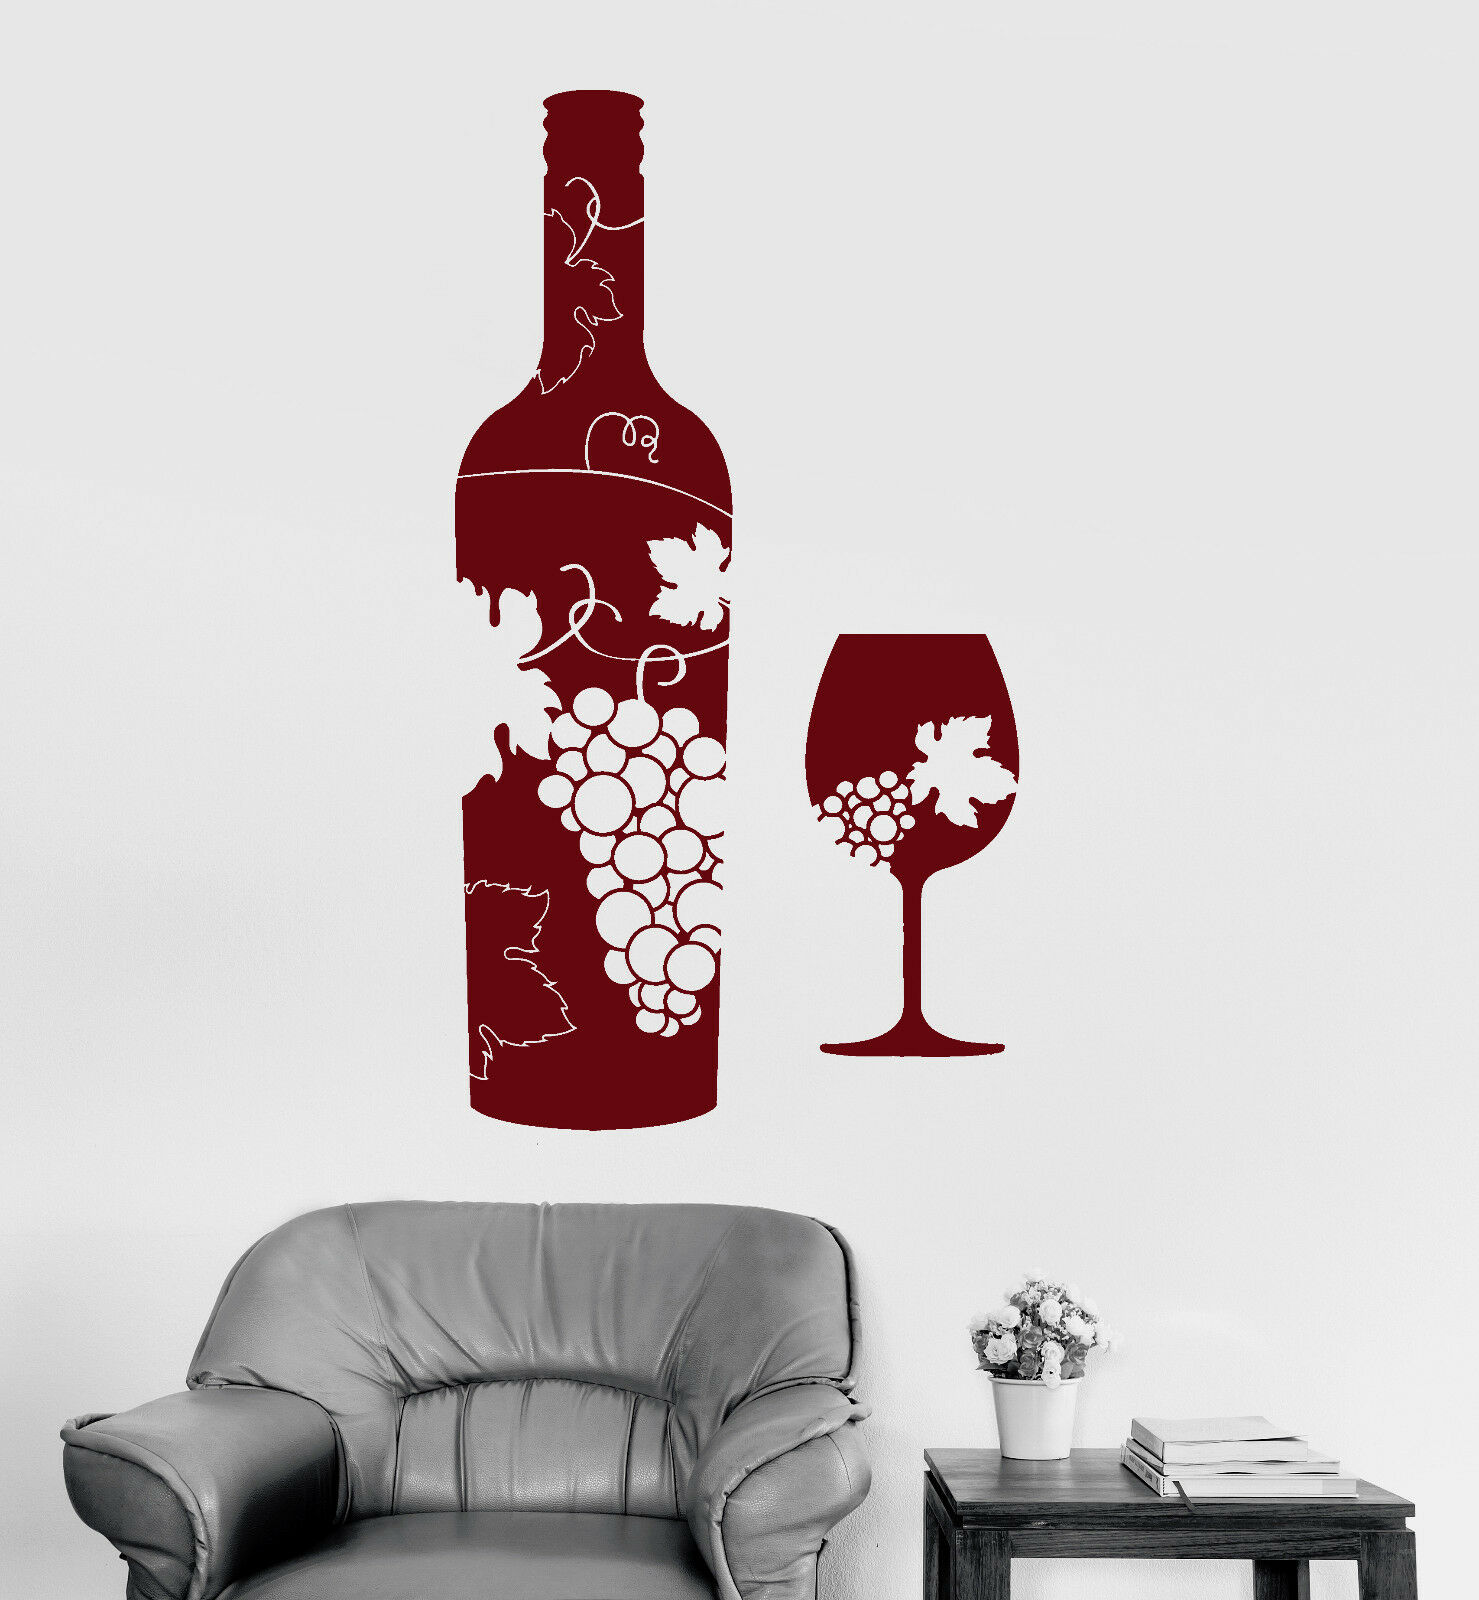 Vinyl Wall Decal Wine Bottle Glass Grapes Bar Alcohol Stickers Mural (ig4173)